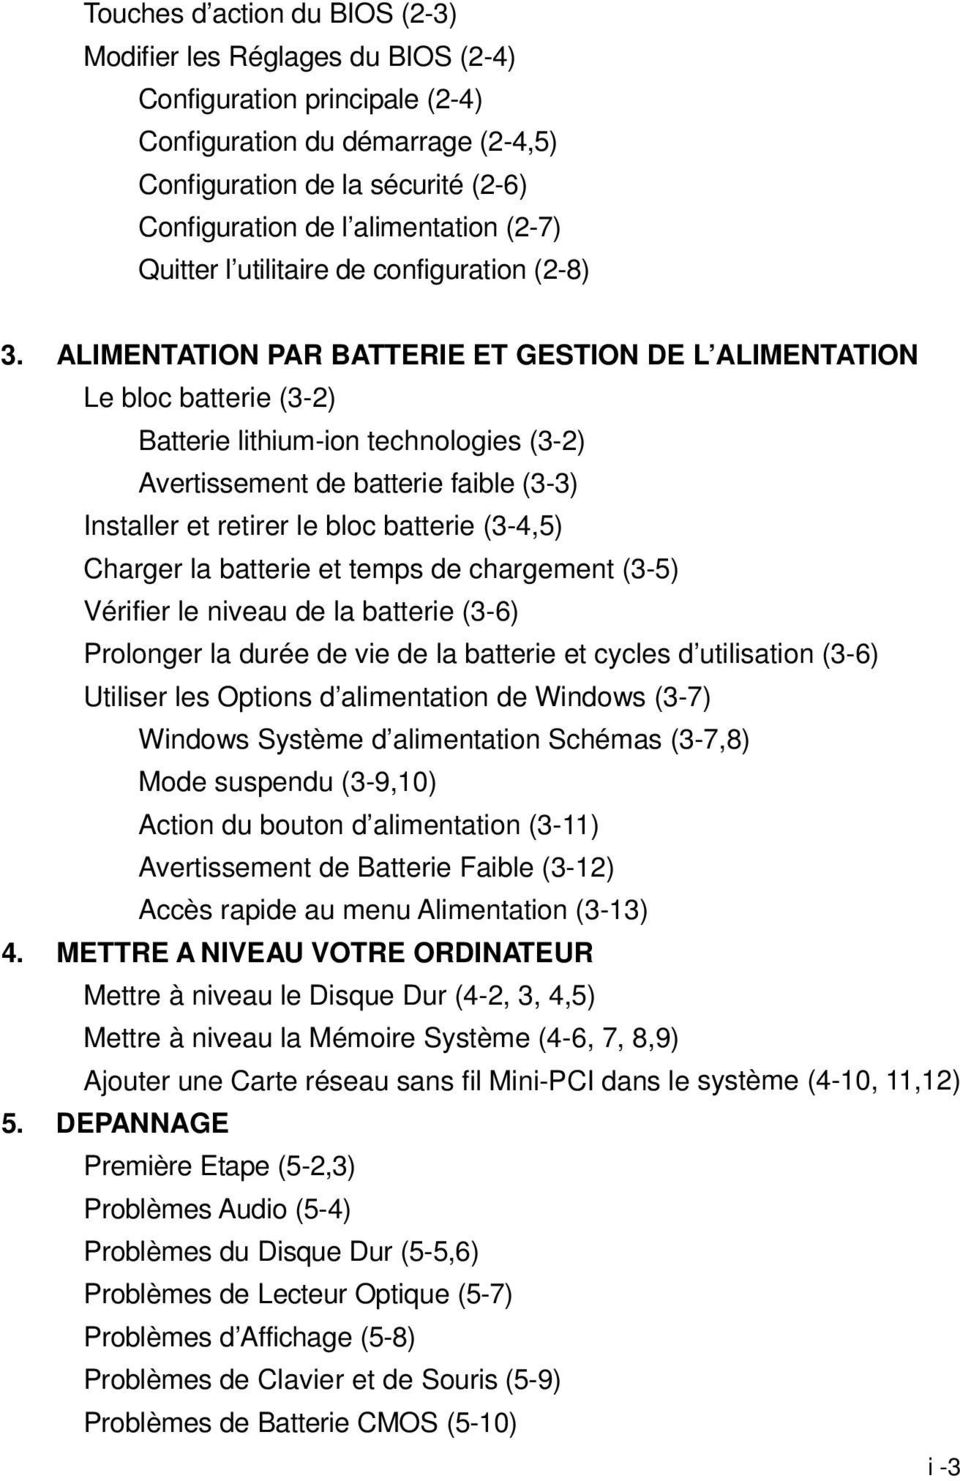 ALIMENTATION PAR BATTERIE ET GESTION DE L ALIMENTATION Le bloc batterie (3-2) Batterie lithium-ion technologies (3-2) Avertissement de batterie faible (3-3) Installer et retirer le bloc batterie